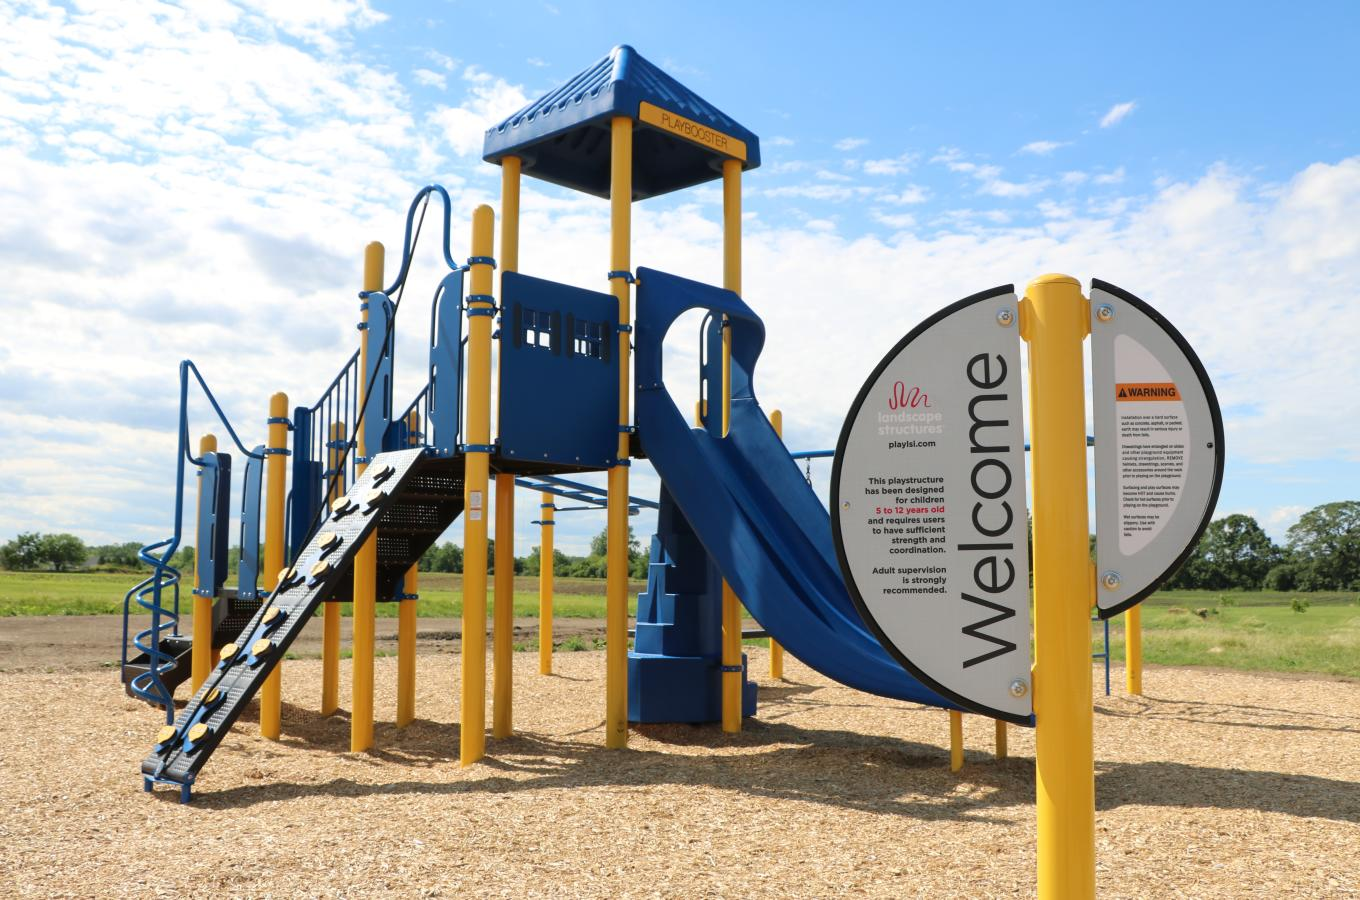 2017 Ingram Park Play Equipment